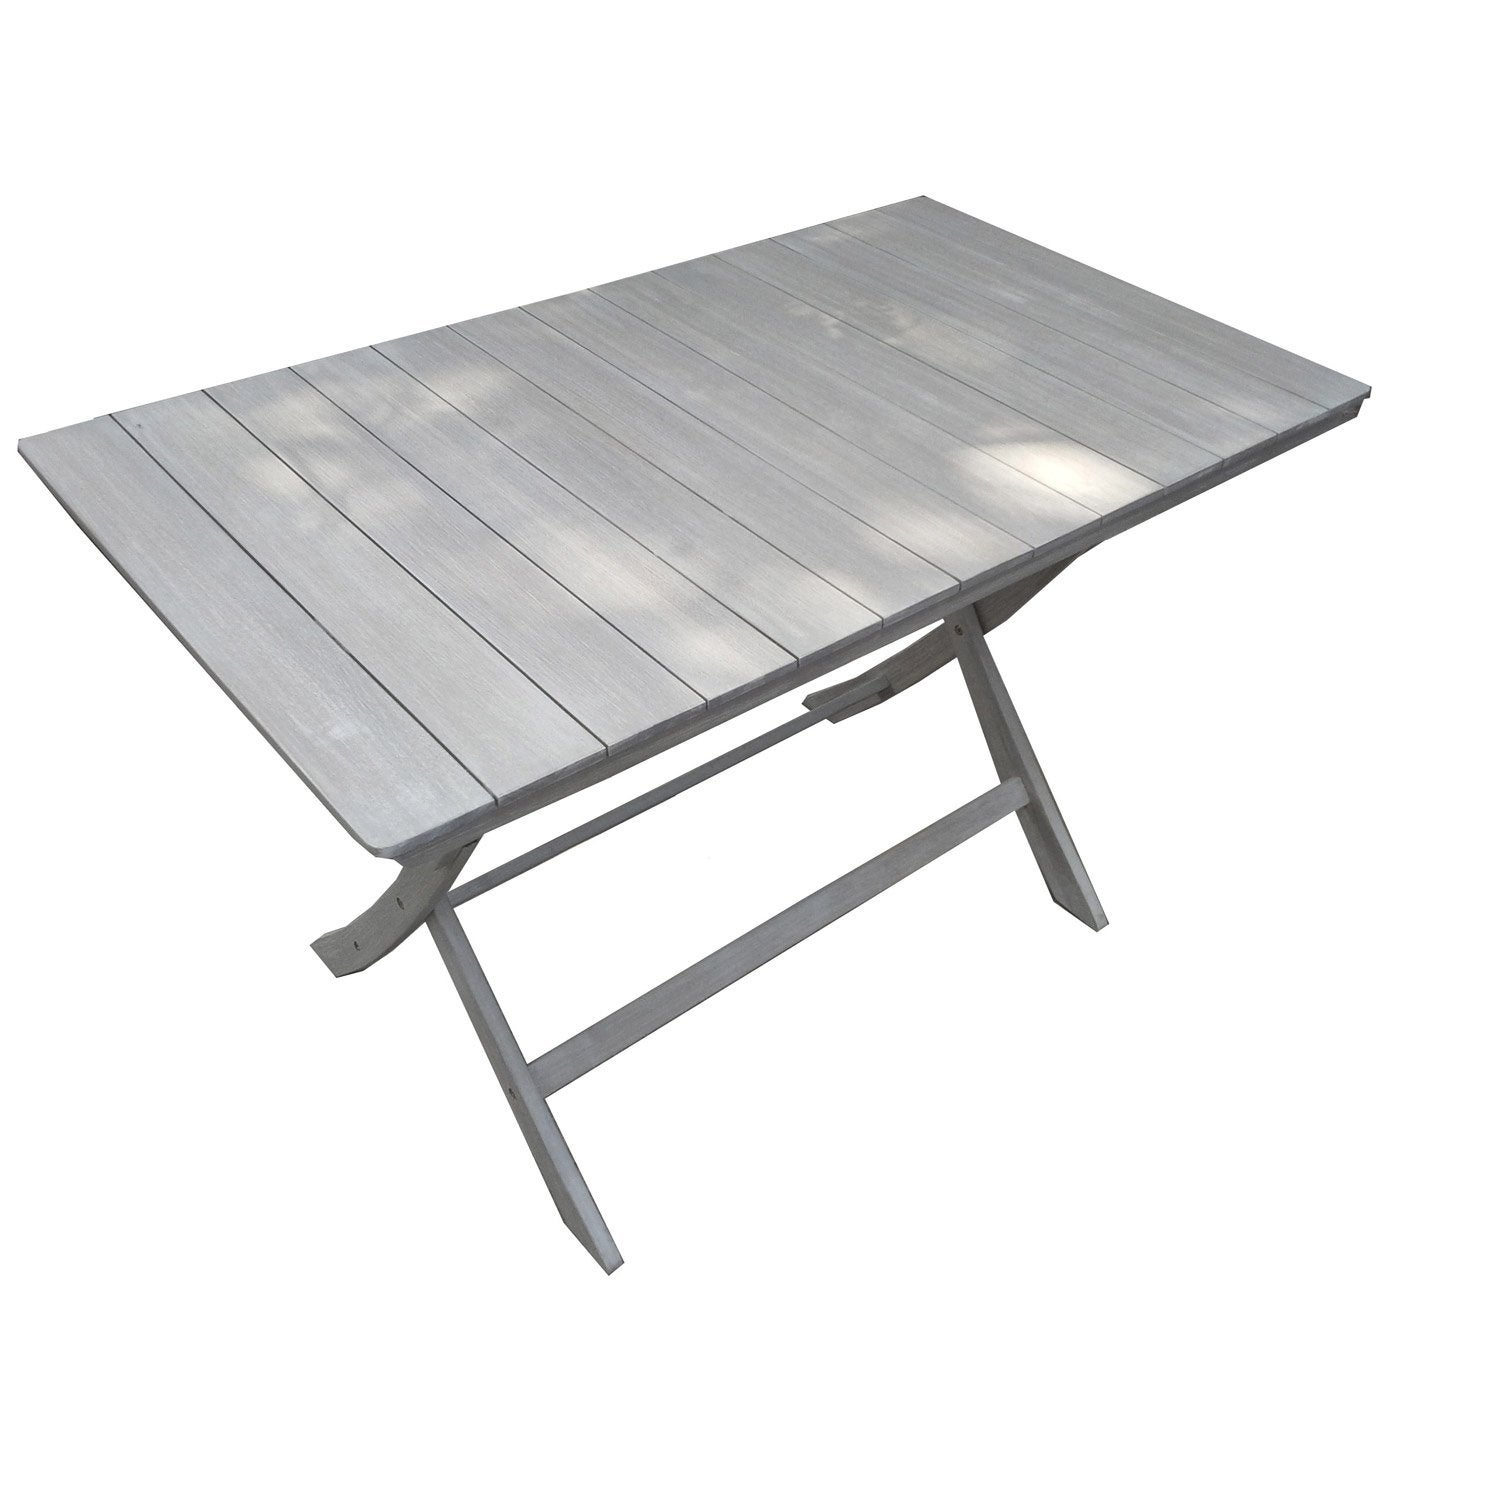 Table de jardin naterial portofino rectangulaire gris 4 for Leroy merlin sofas jardin